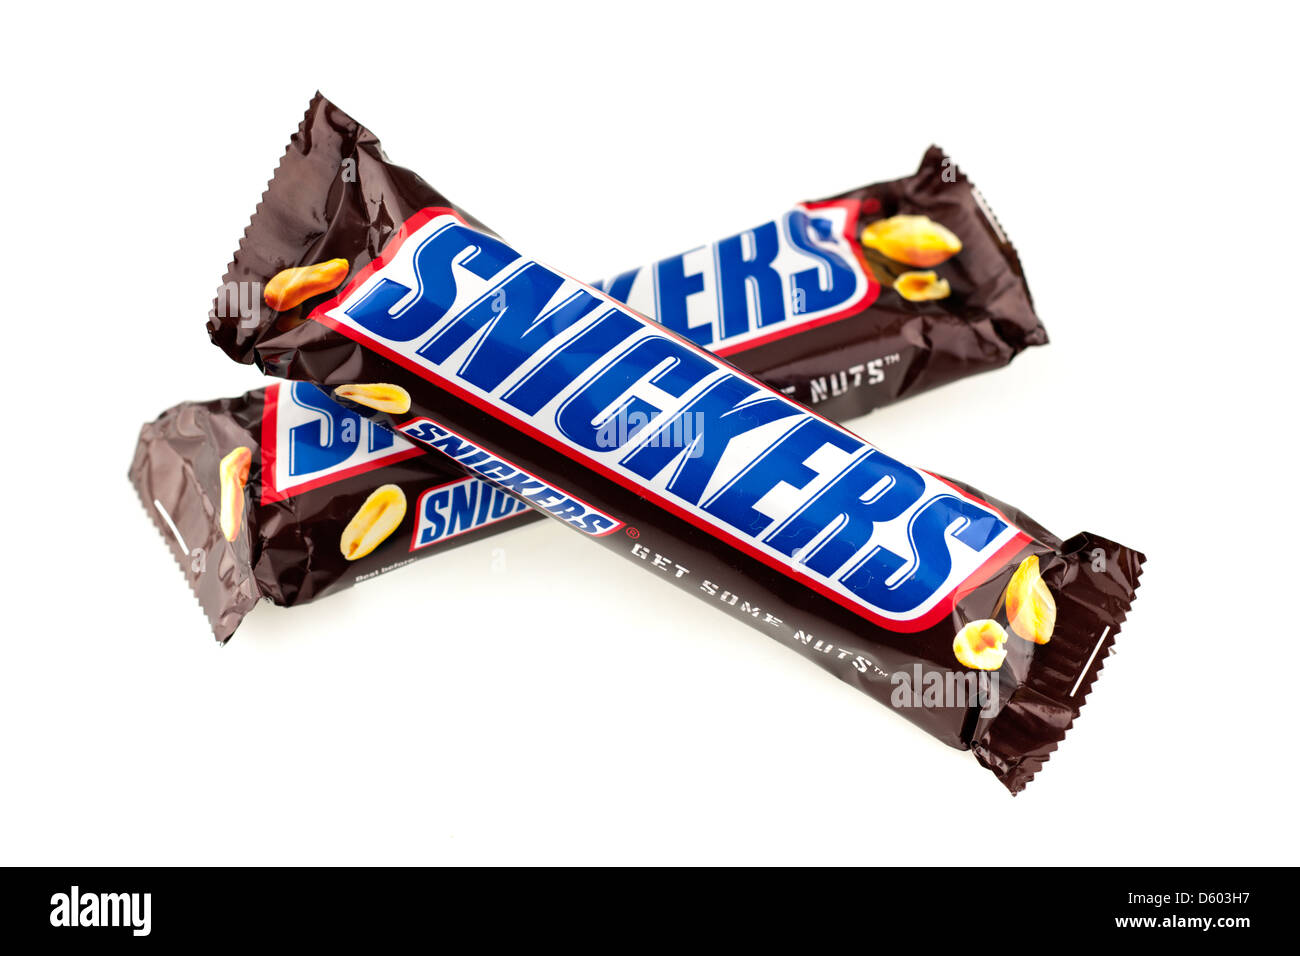 Snickers Chocolate Stock Photos & Snickers Chocolate Stock Images ...